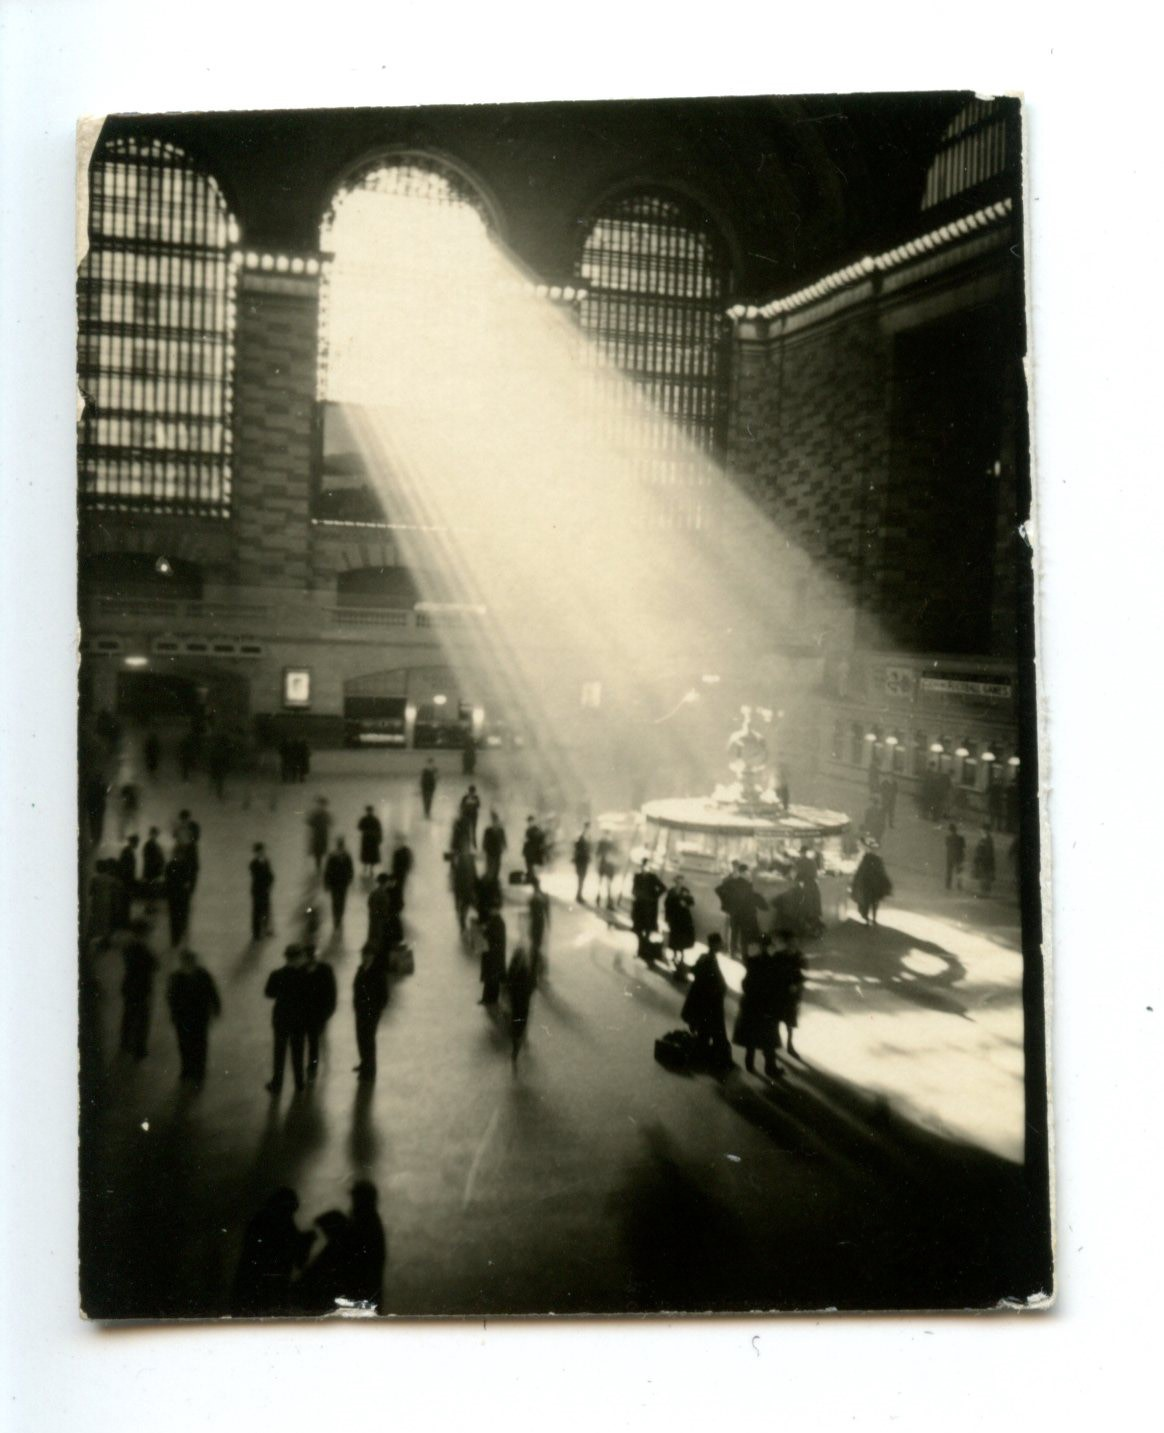 Grand Central Interior with Broad Shaft of Light